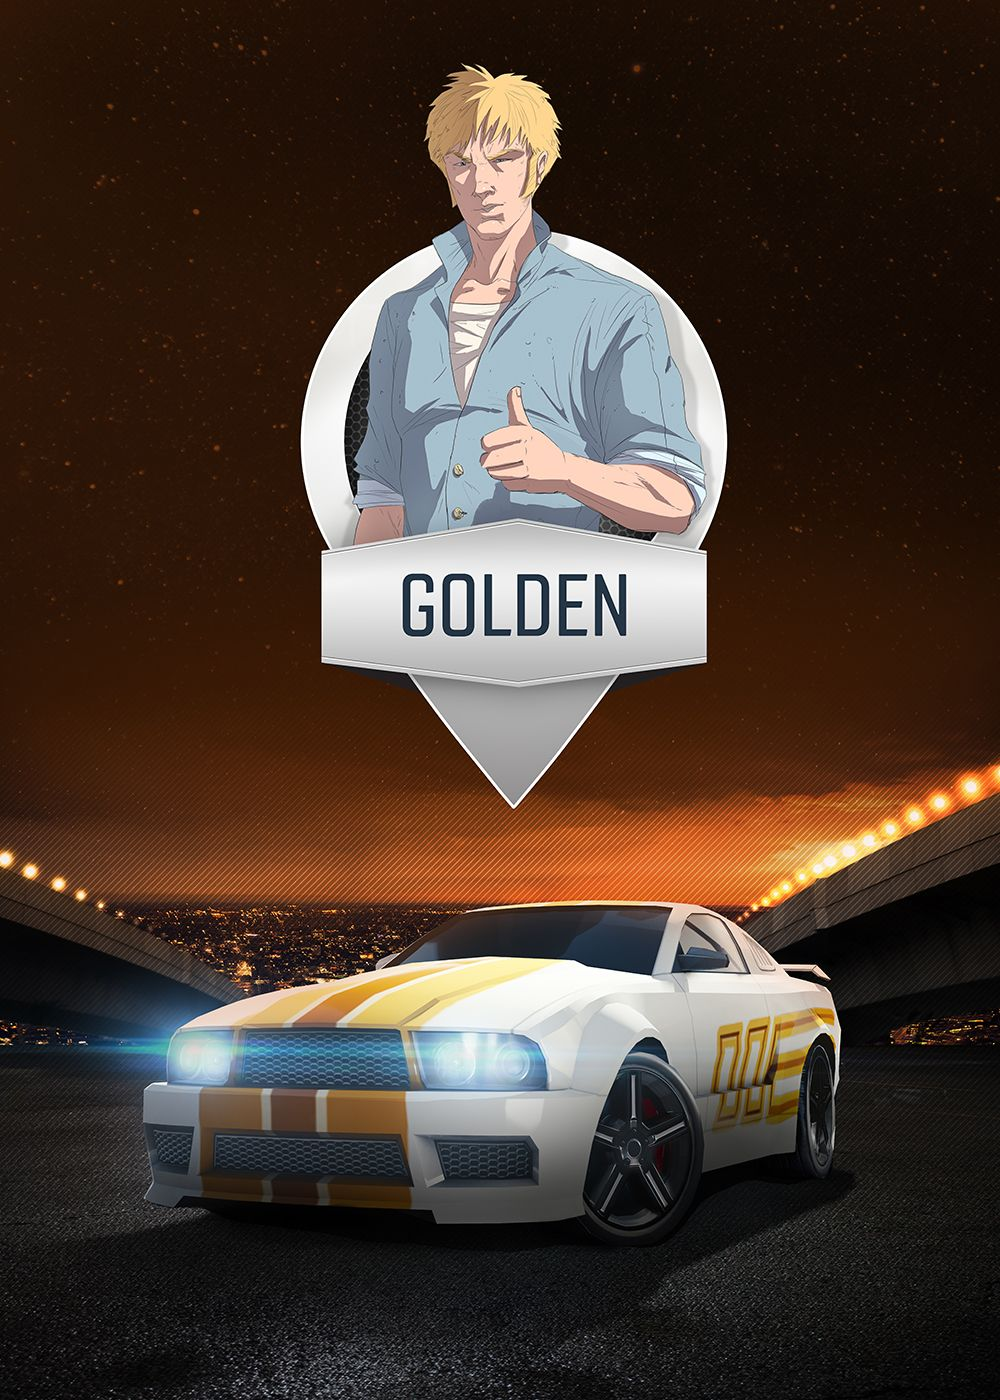 Golden - mobile game poster by T-Bull Entertainment | Top Speed ...